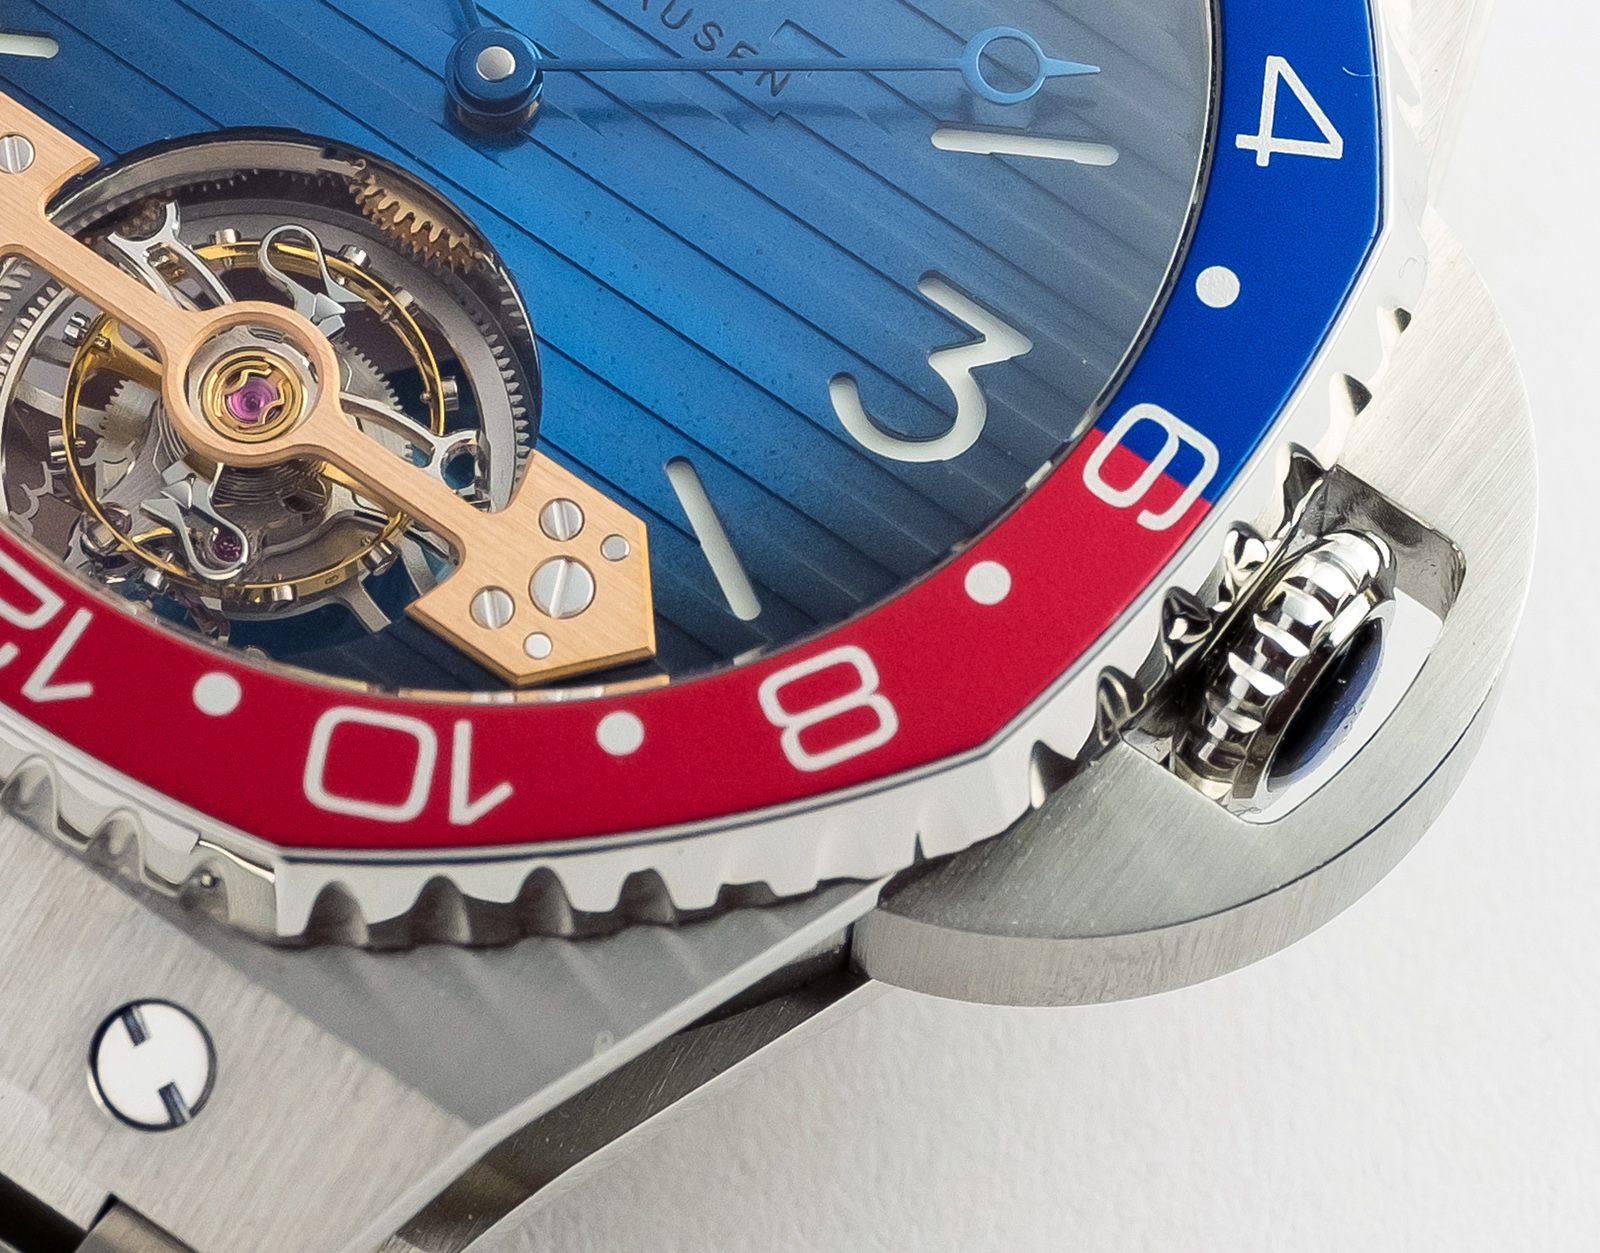 H.Moser & Cie Swiss Icons Watch_33804-1200_Lifestyle_1